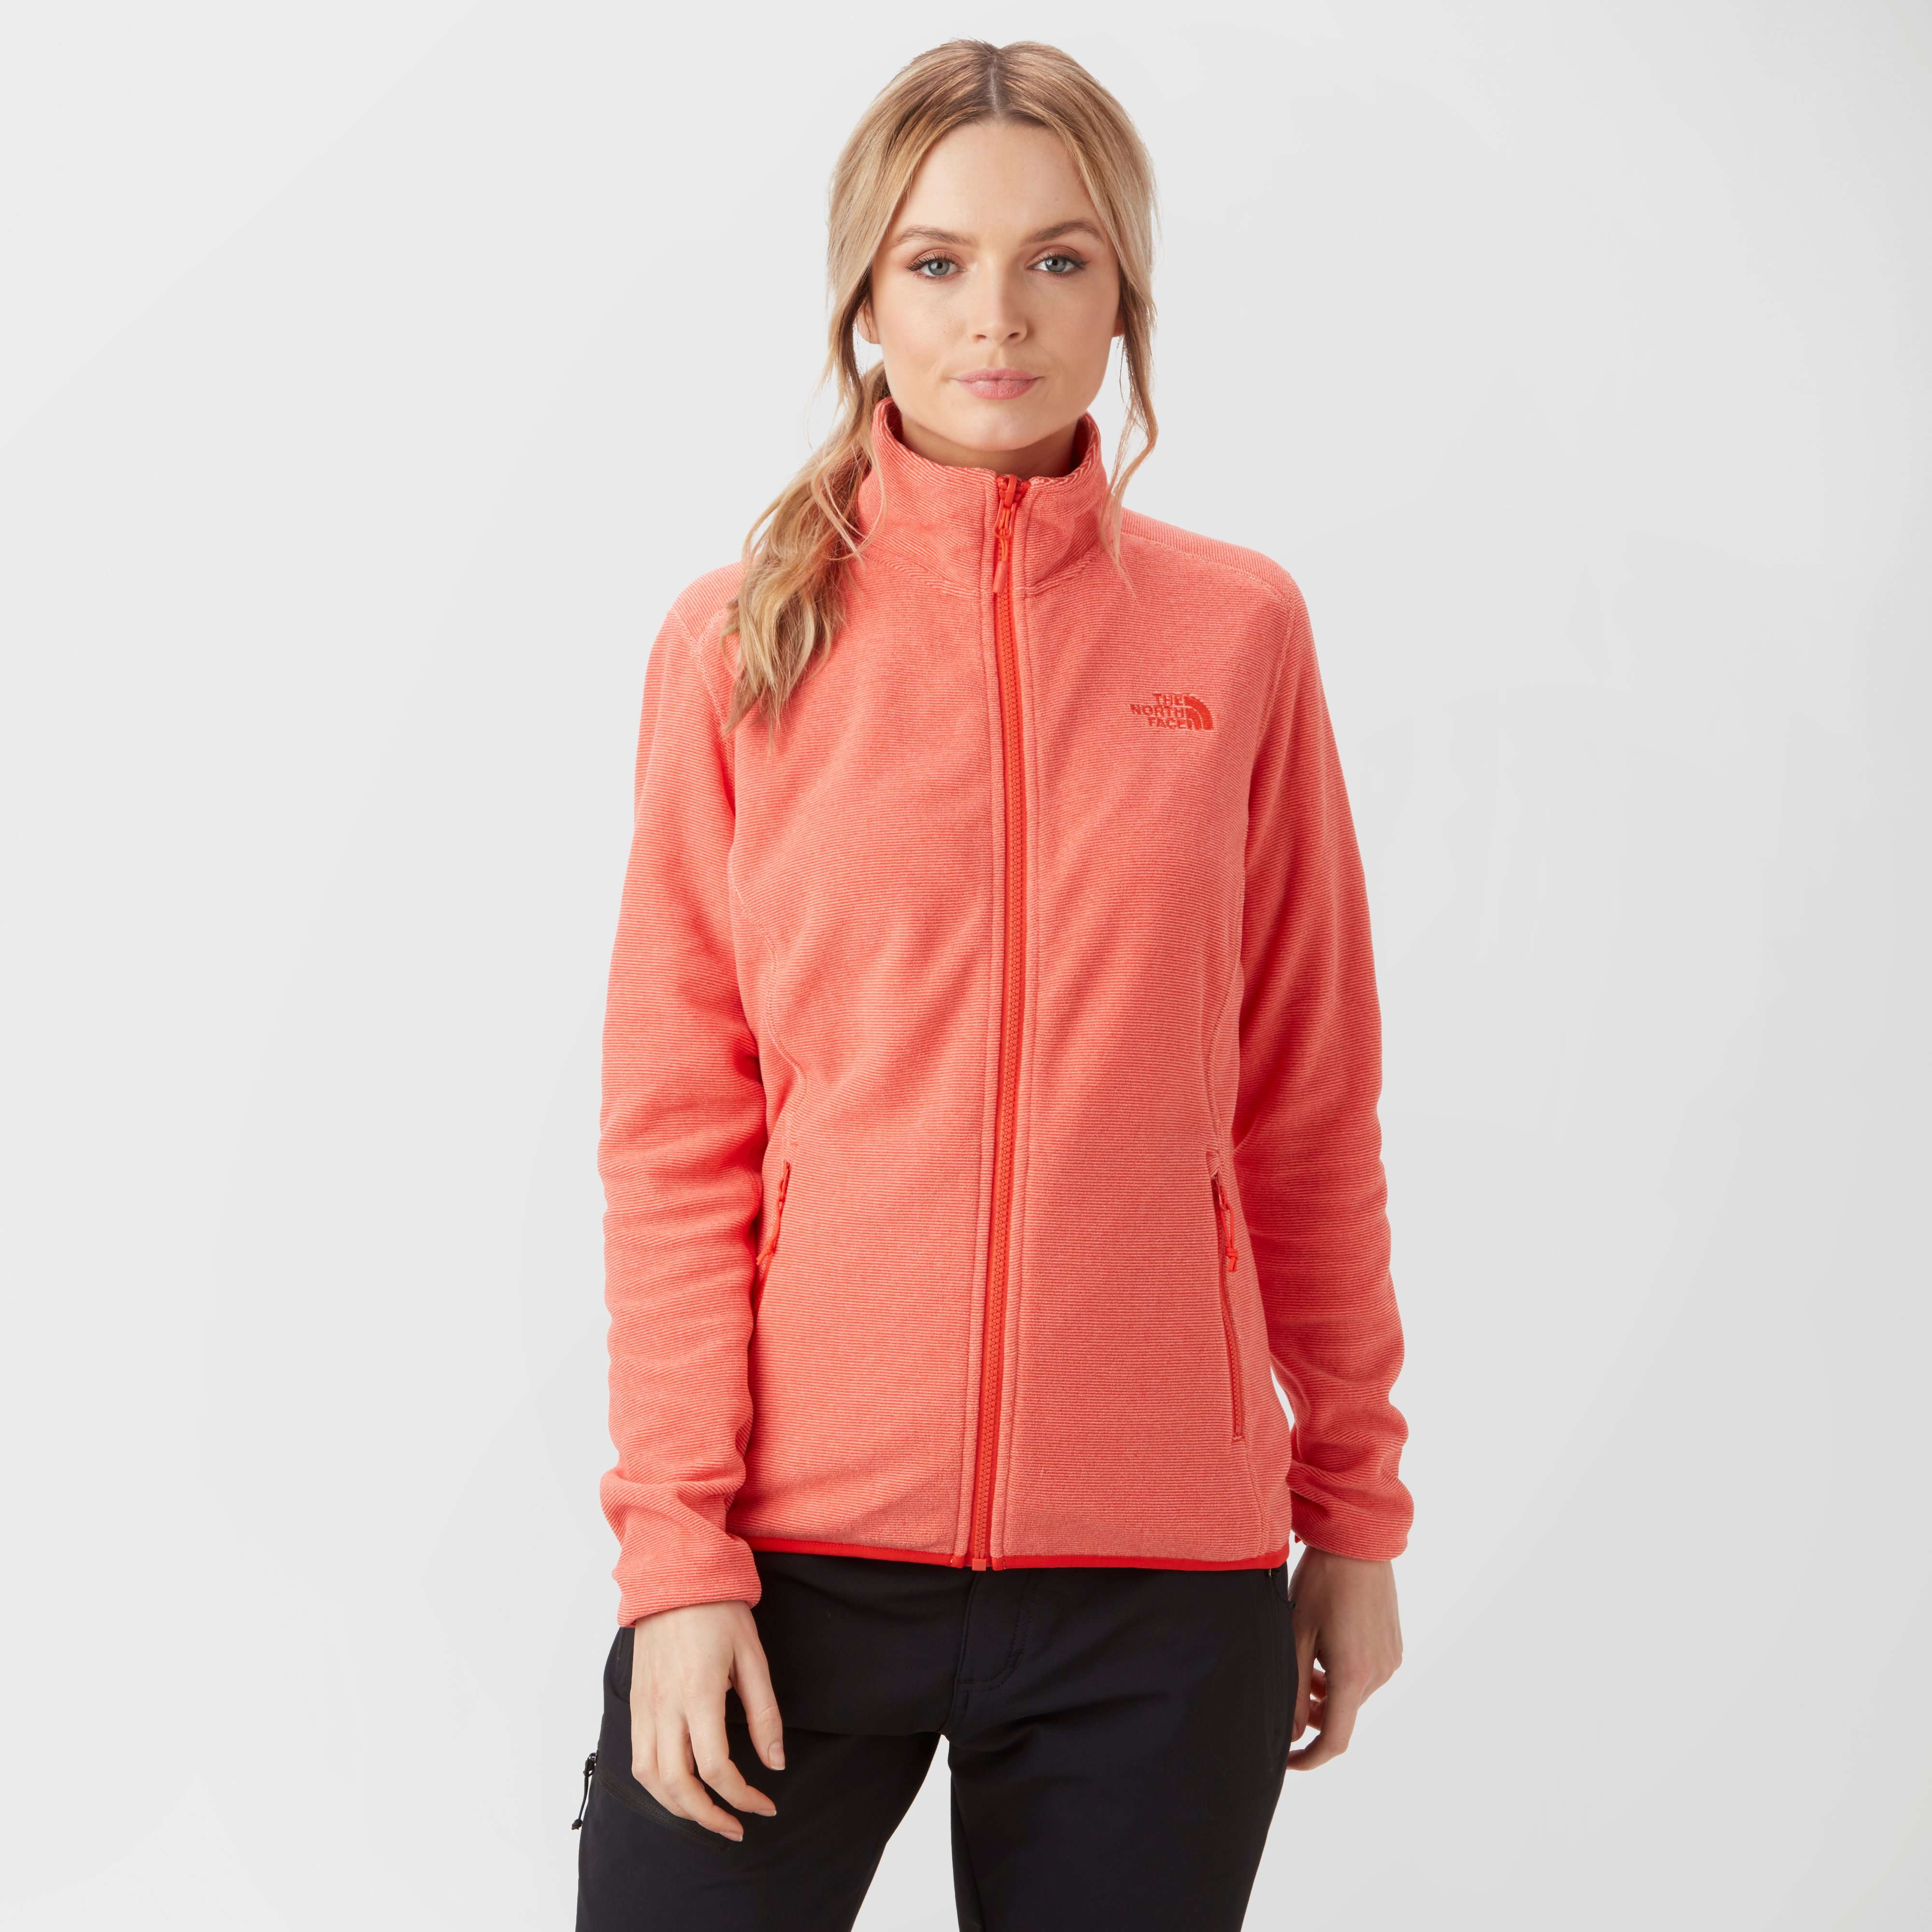 THE NORTH FACE Women's 100 Glacier Fleece Jacket